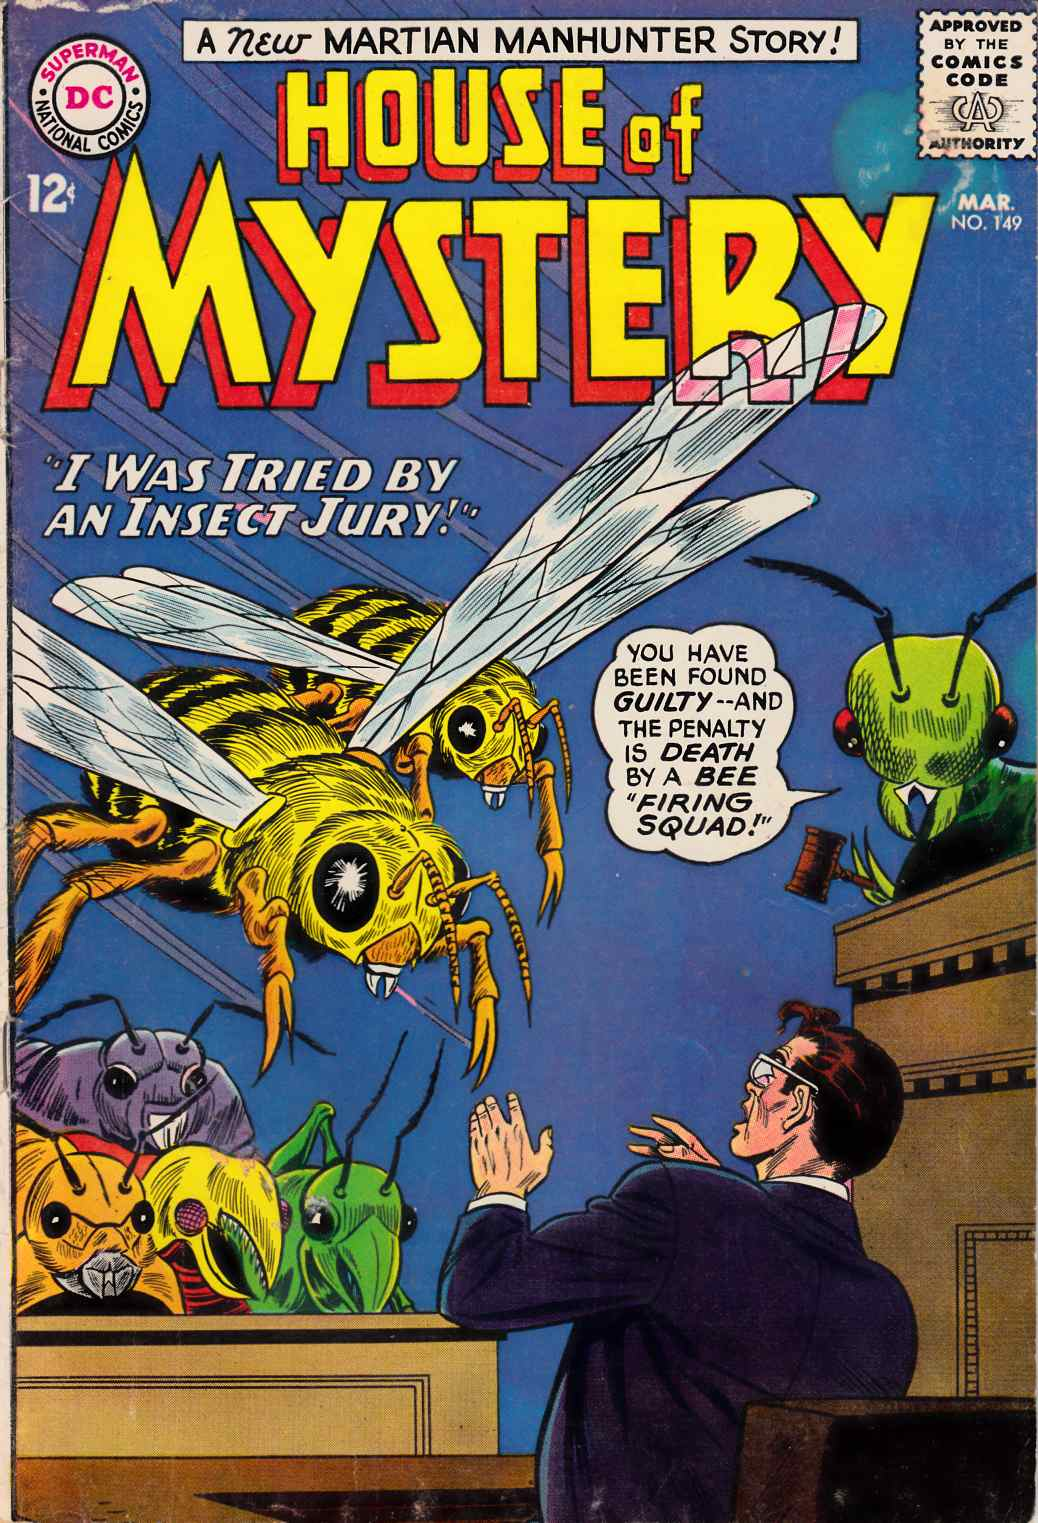 House of Mystery #149 [DC Comic] THUMBNAIL